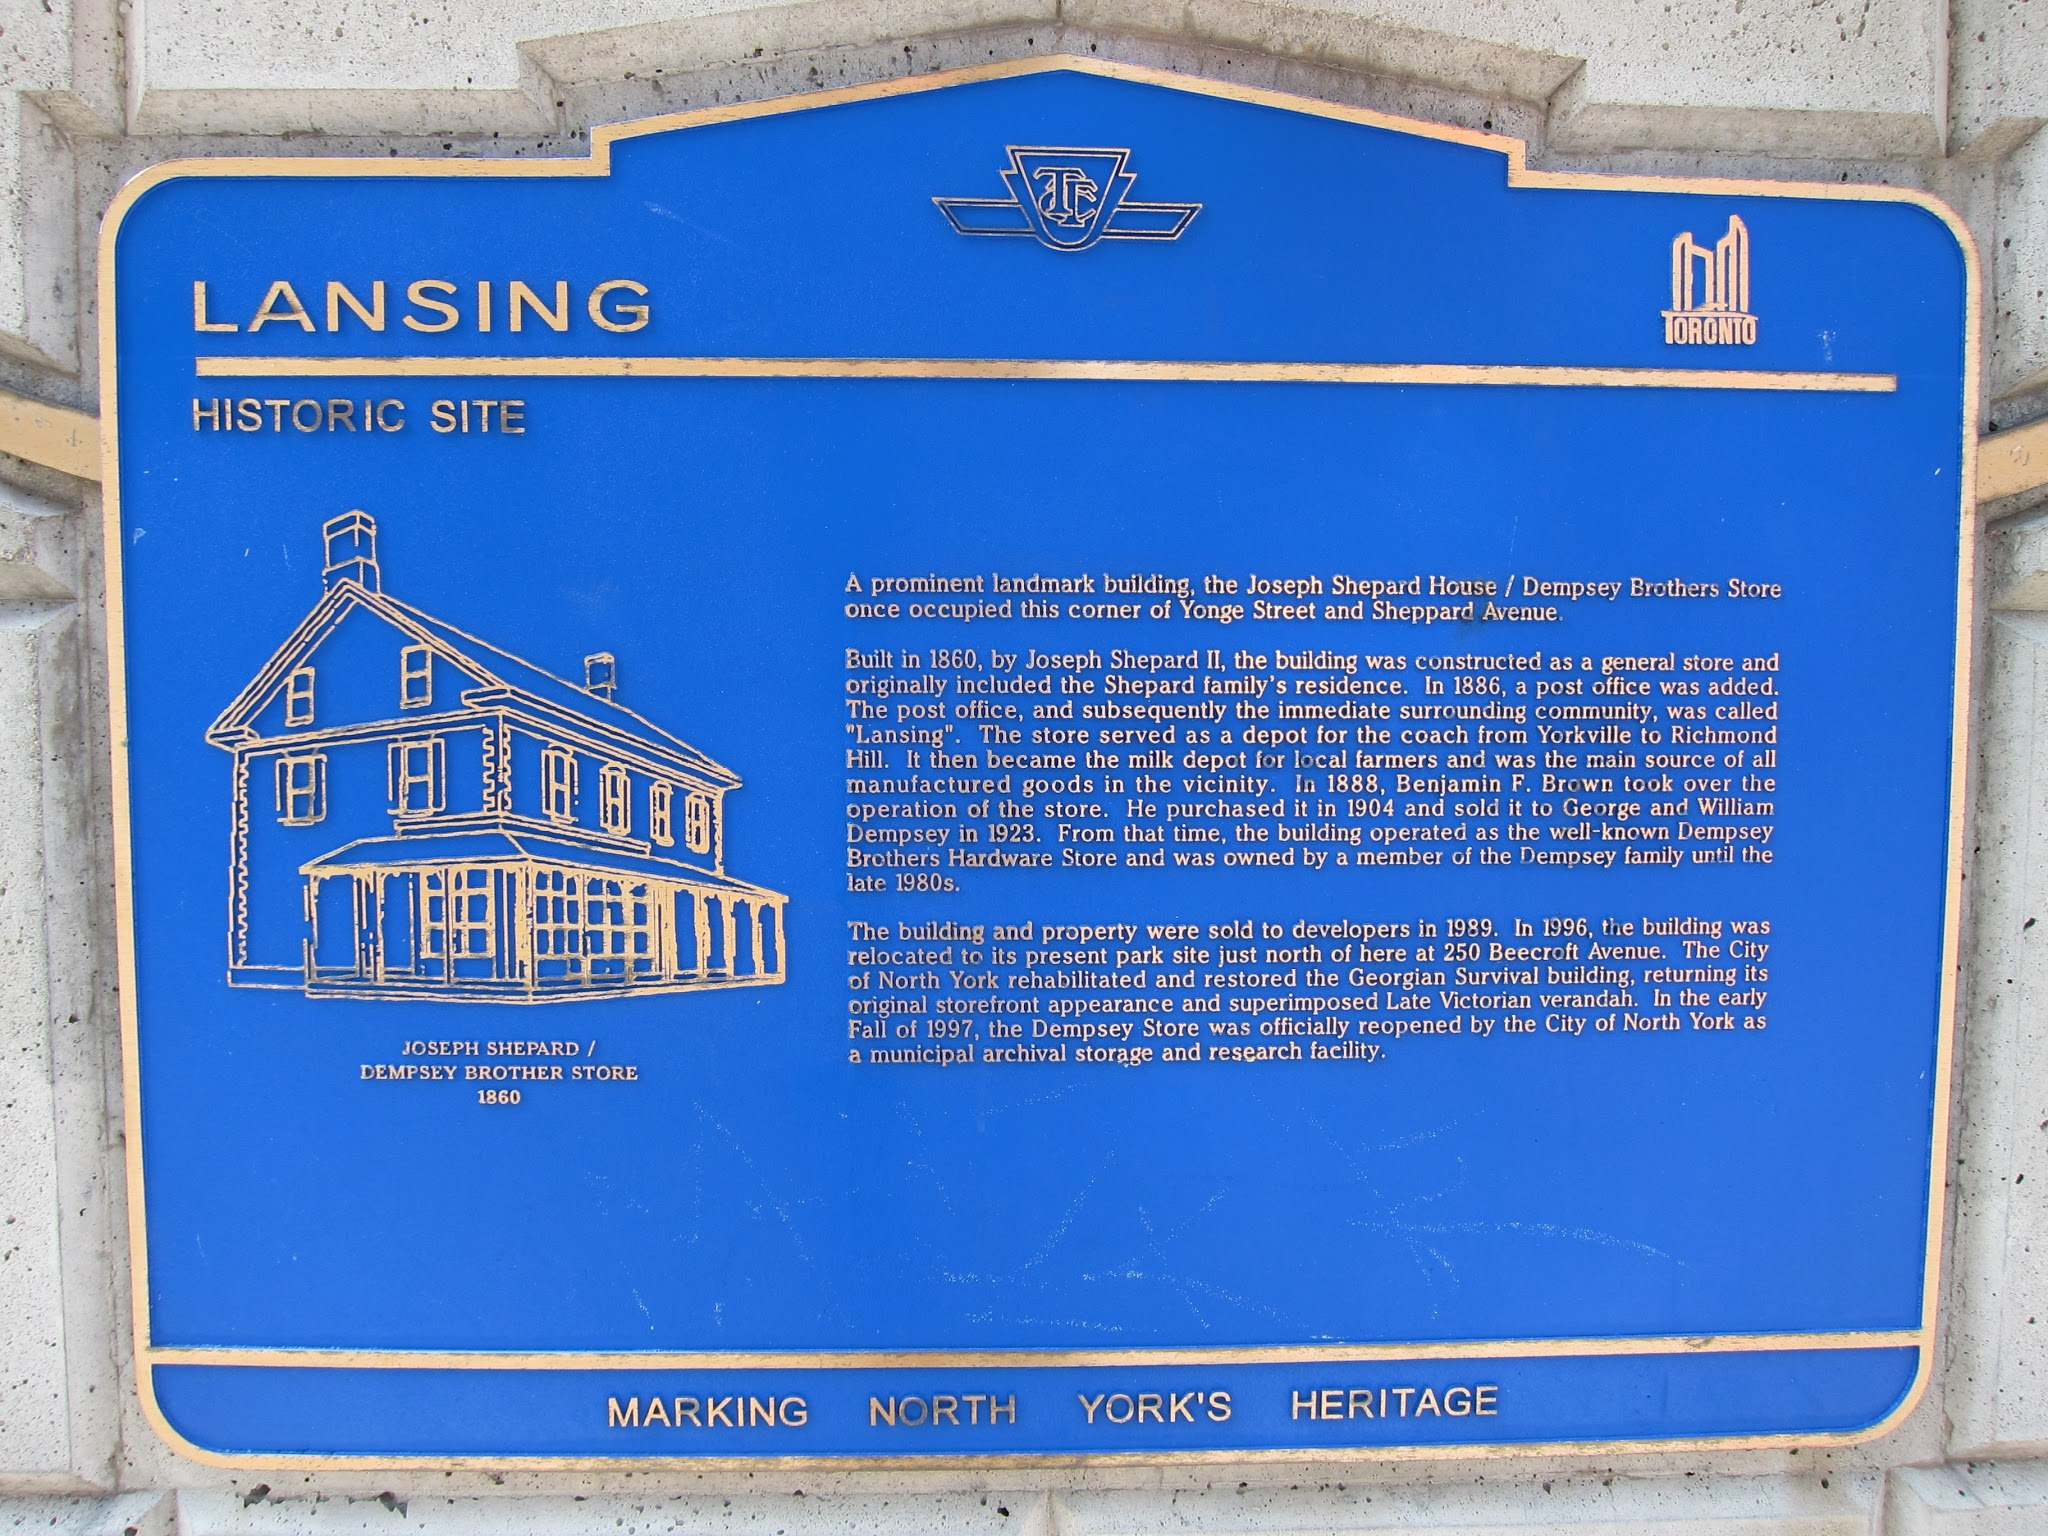 Photo: Historical TTC commemorative plaque north west corner of Yonge and Sheppard.  A 1955 photo of the Joseph Shepard house in its original location may be viewed here: http://static.torontopubliclibrary.ca/da/images/LC/2001-2-55p.jpg